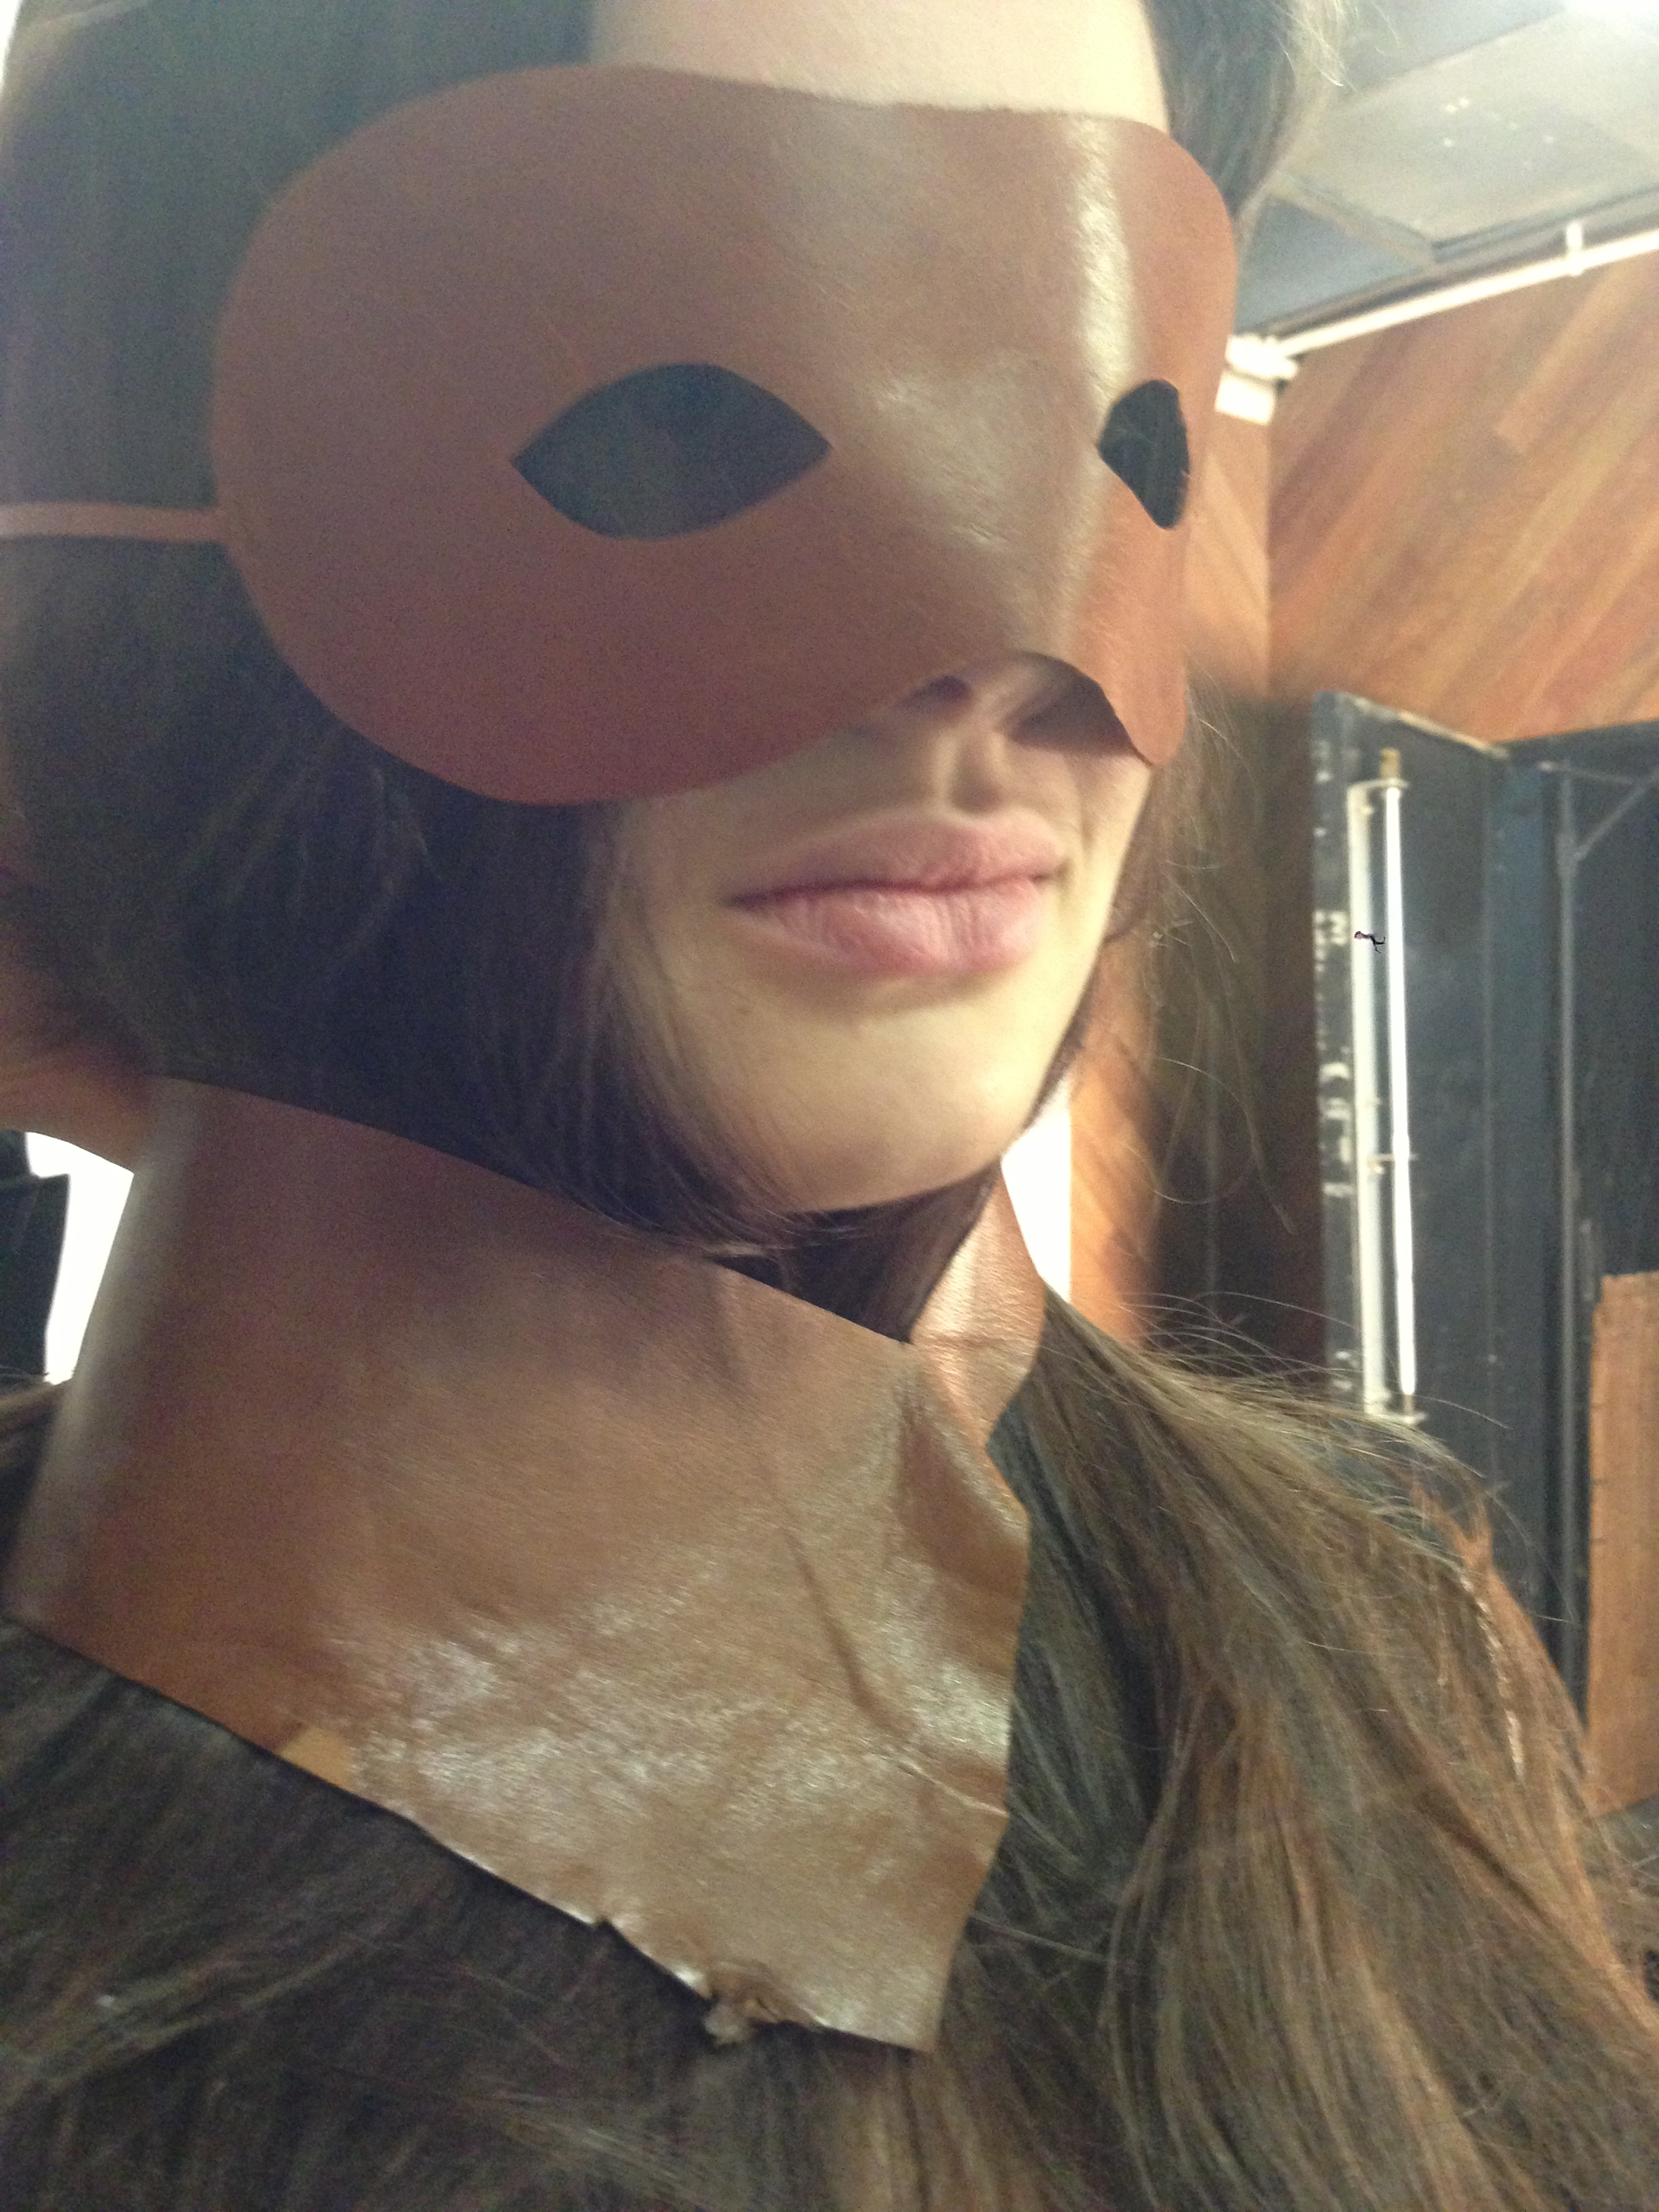 J.Elster Jennifer Elster The Raw Collection Raw Luxury Handmade in NYC J.Elster NYC Jelster Leather The Mask in Natural on Caroline Day